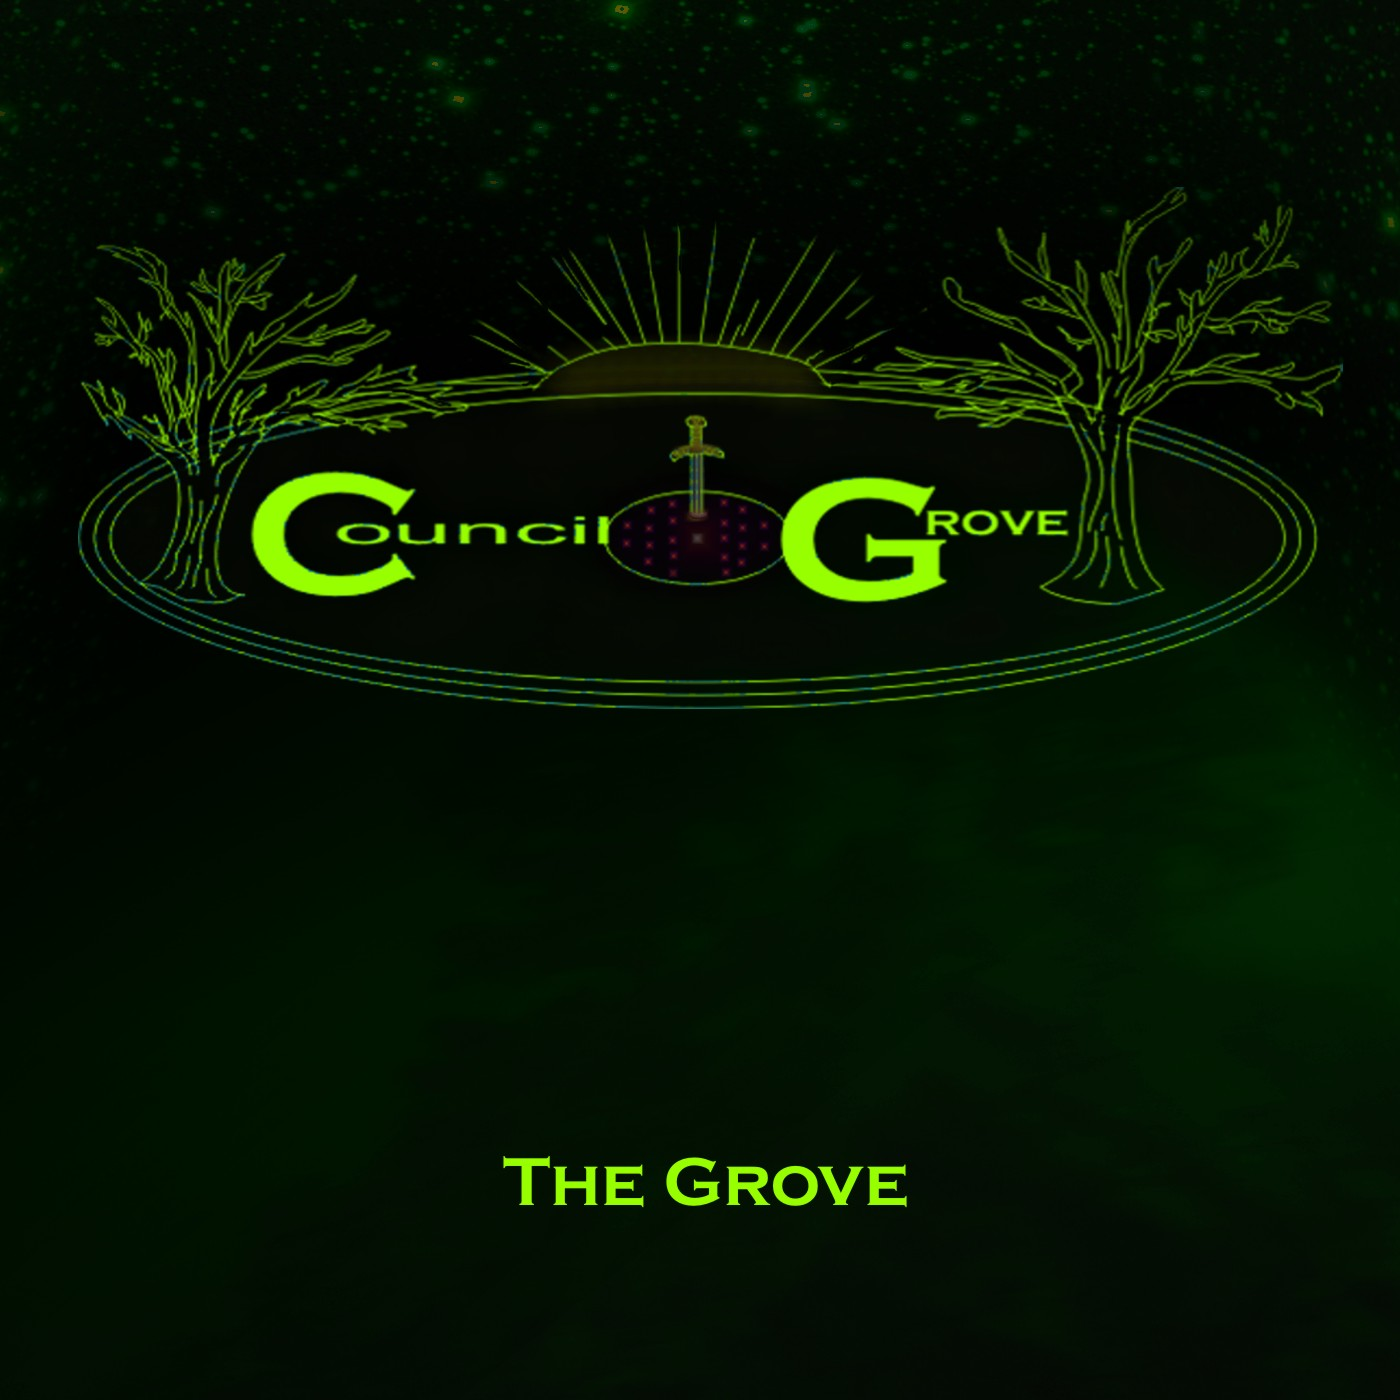 http://www.indiemusicpeople.com/Uploads/Council_Grove_-_grove_front.jpg